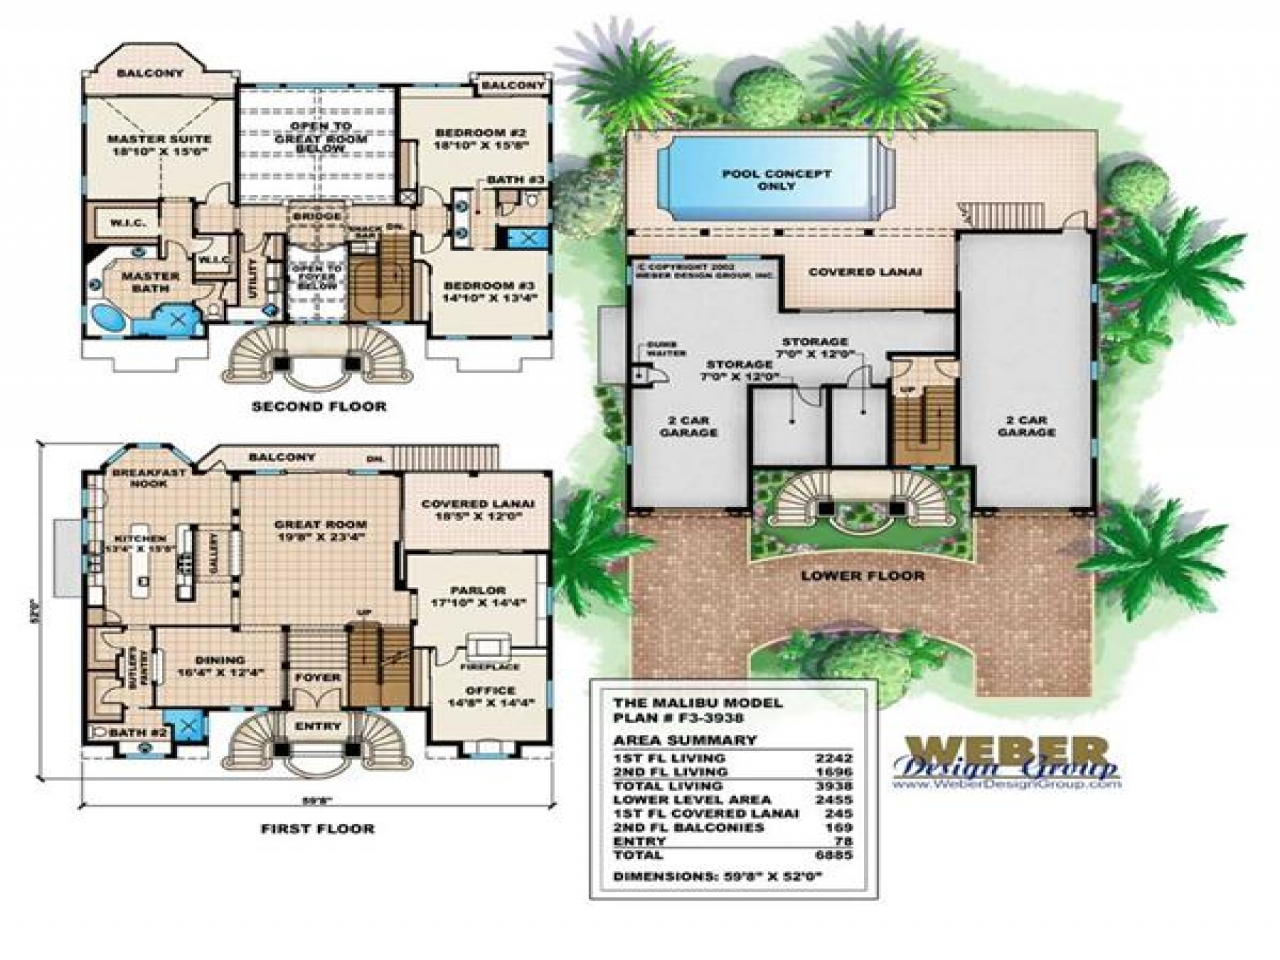 Mediterranean house floor plans small luxury mediterranean for Mediterranean style floor plans